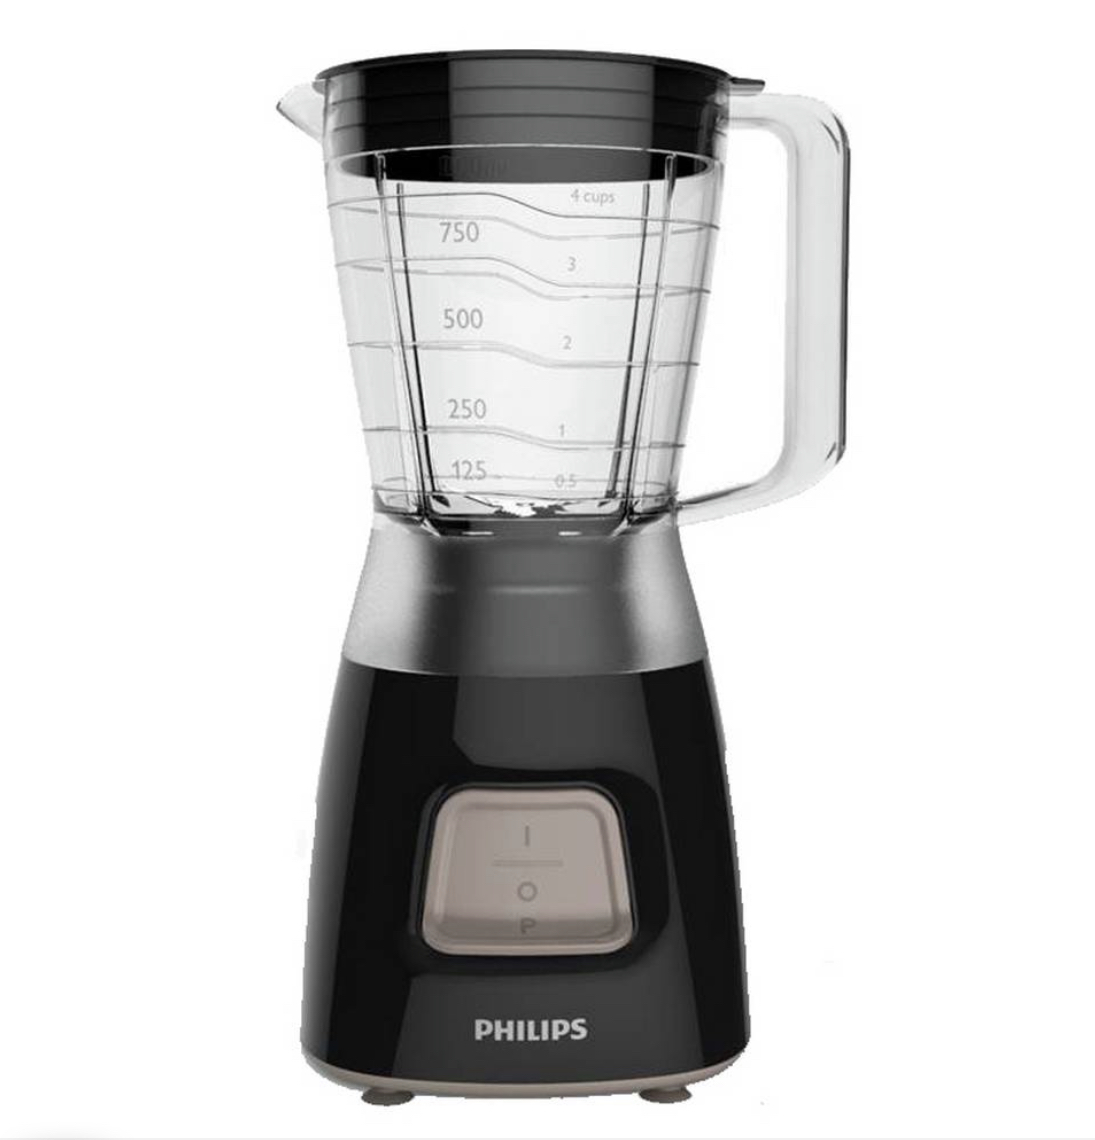 Philips Daily Collection 1.25L Jug Blender